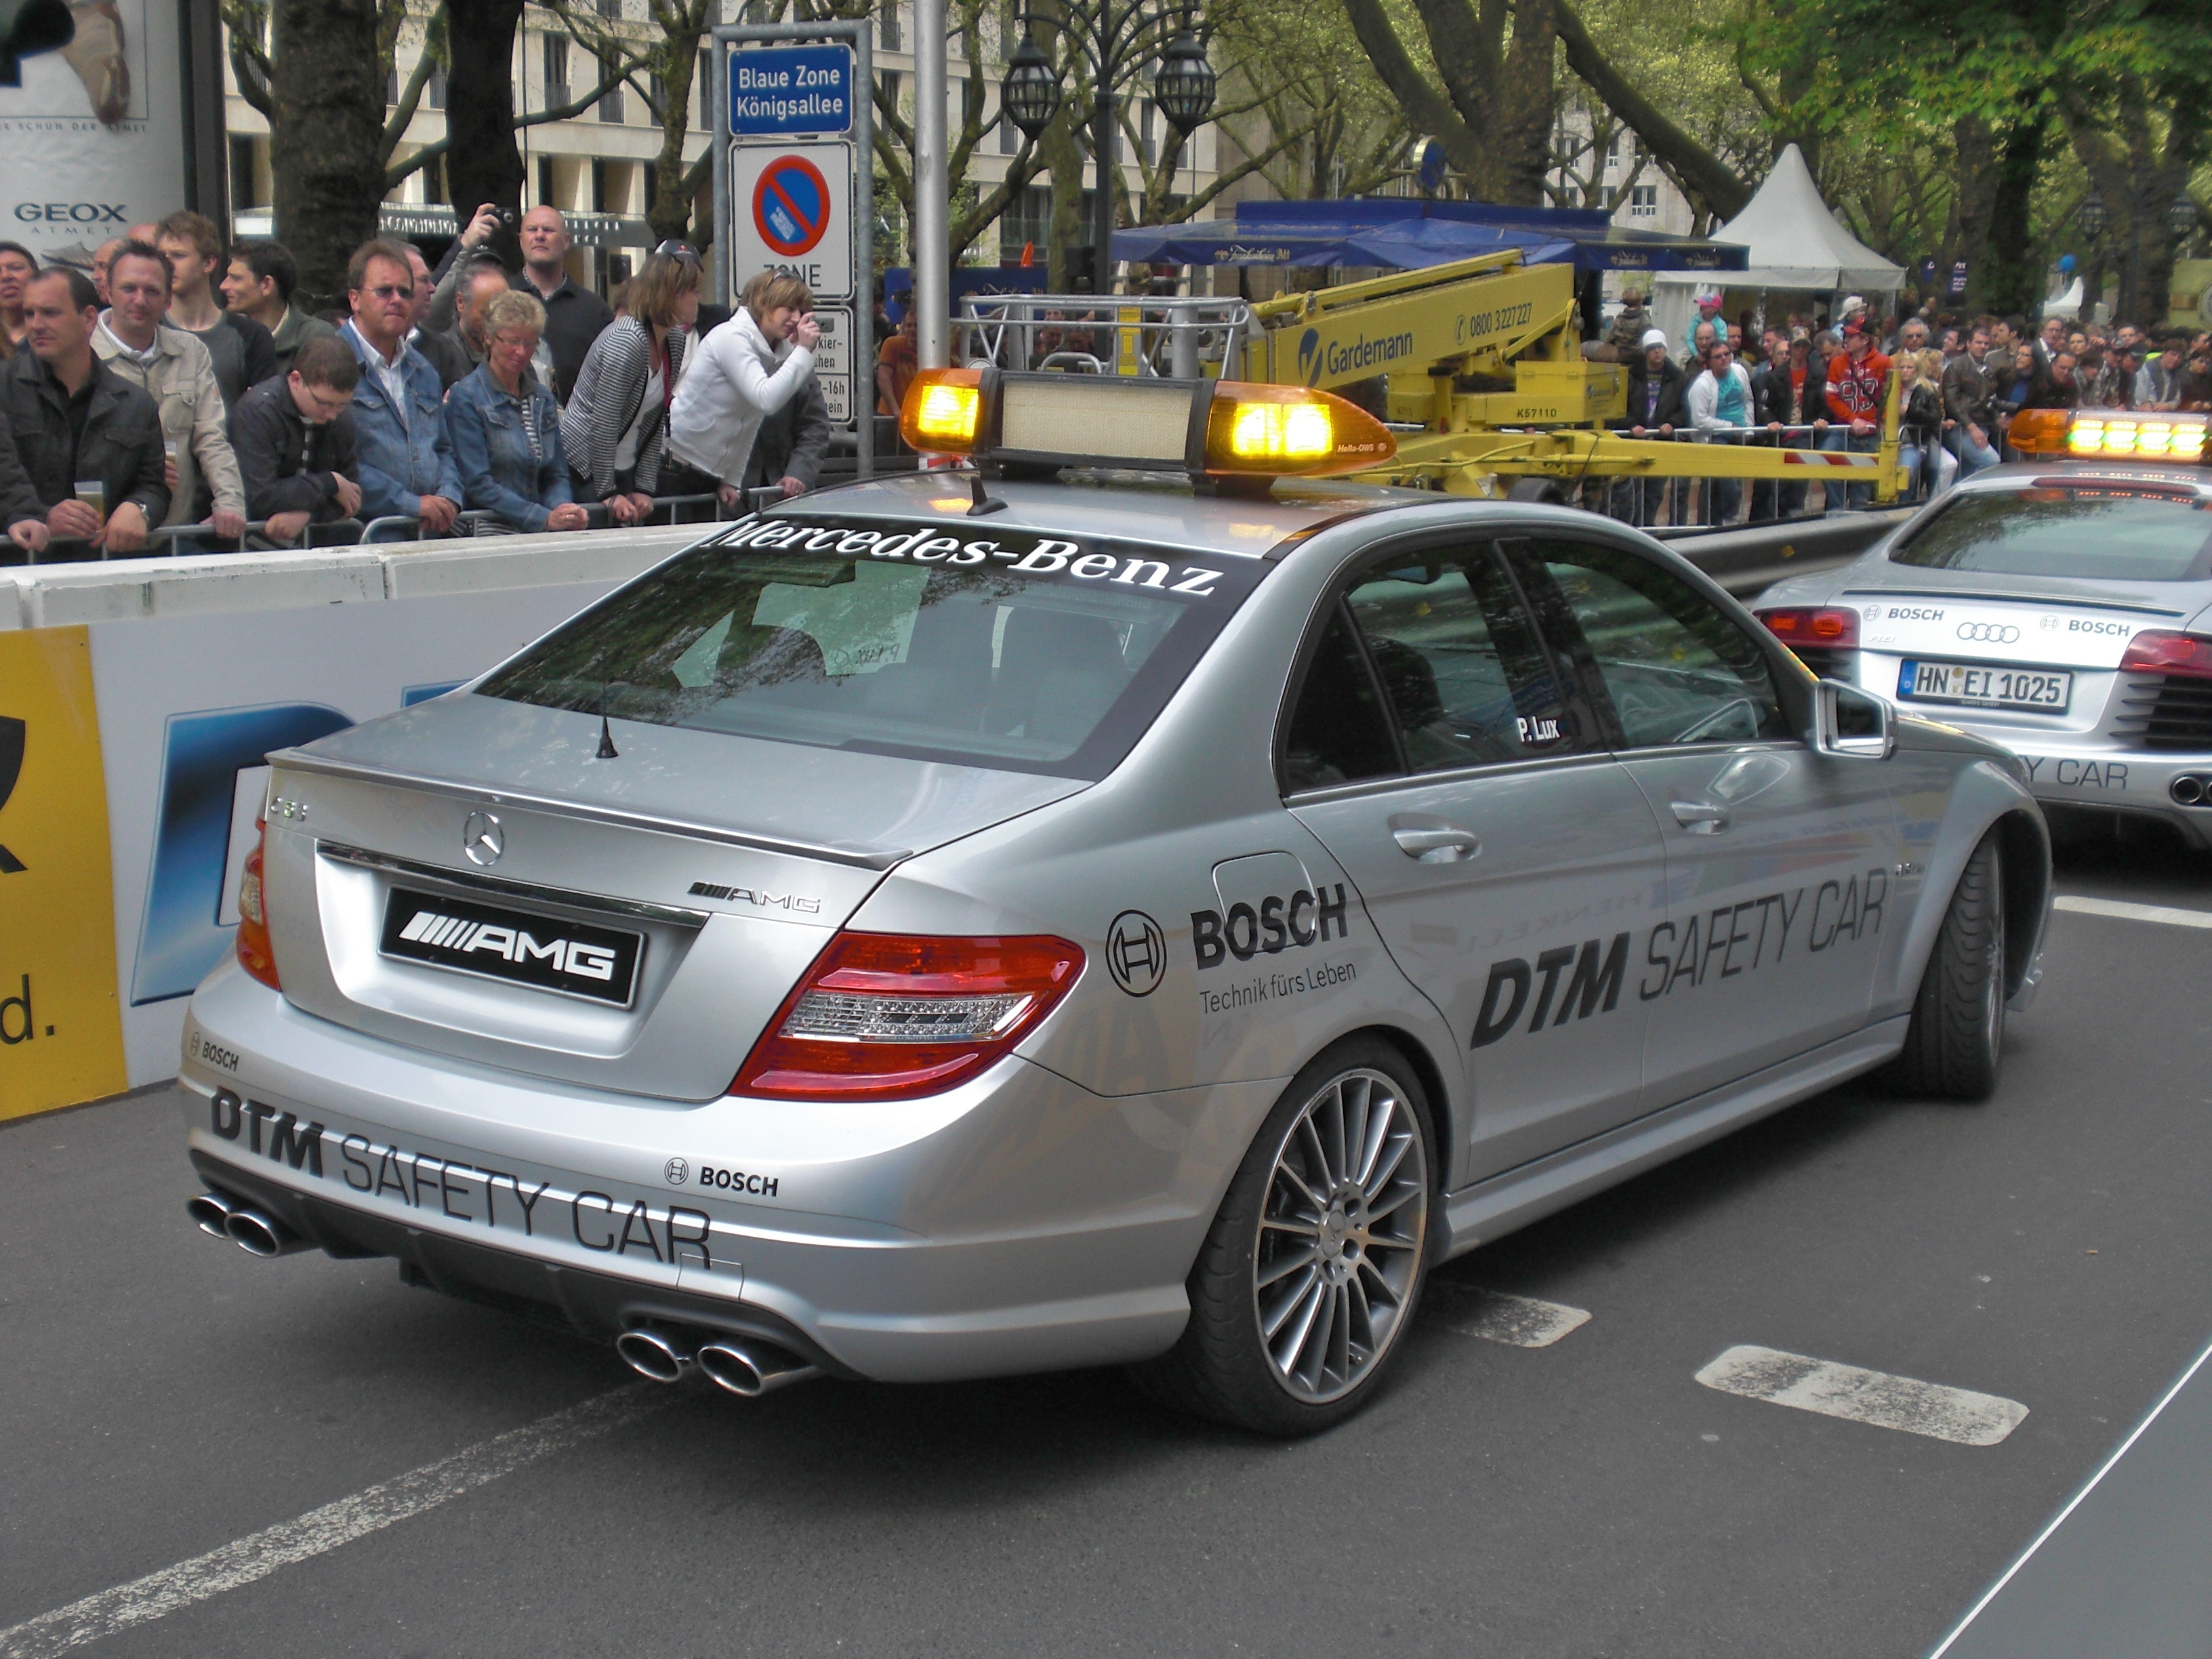 File Amg C63 W204 From 2007 Dtm Safety Car Backright 2009 04 19 A Jpg Wikimedia Commons